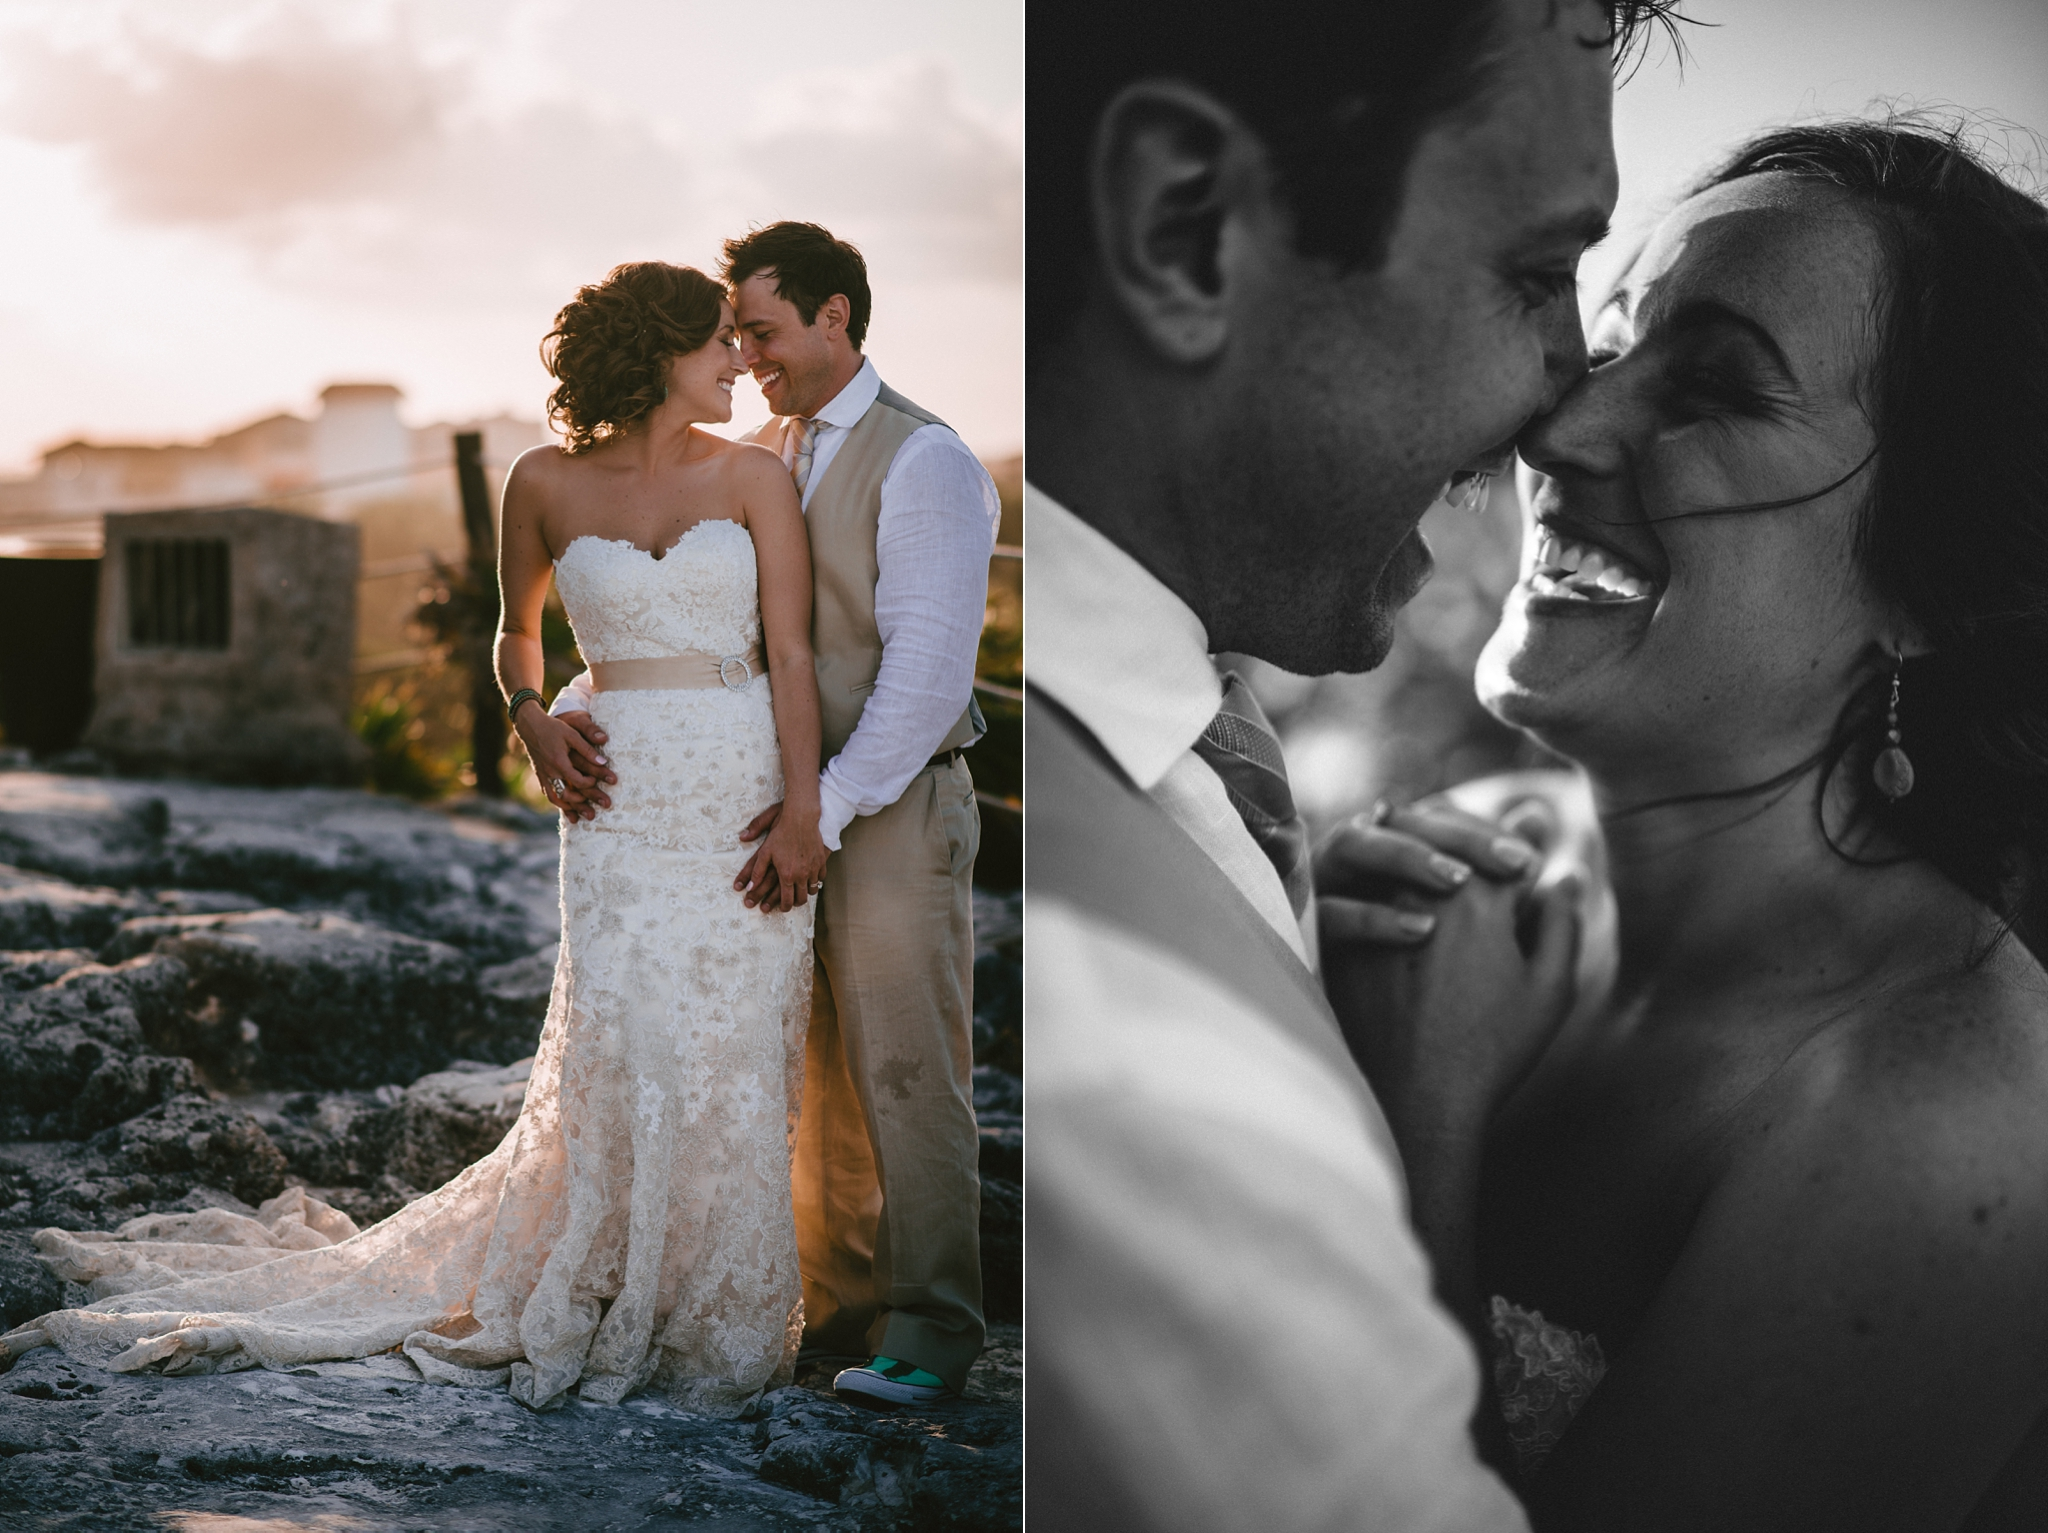 kaihla_tonai_intimate_wedding_elopement_photographer_1155